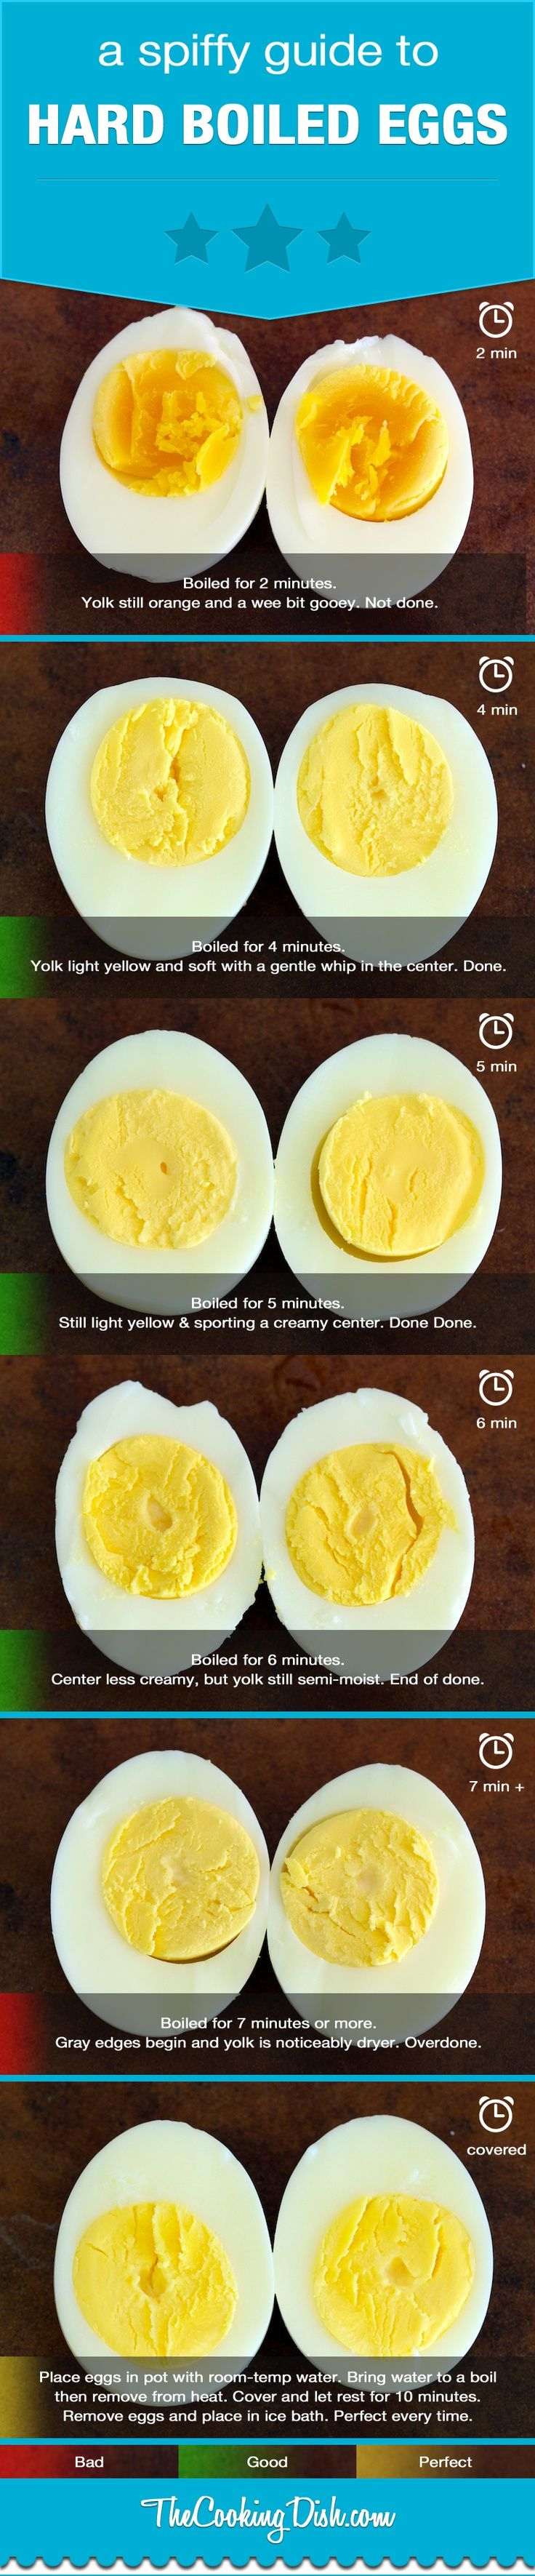 Guide to Hard Boiled Eggs